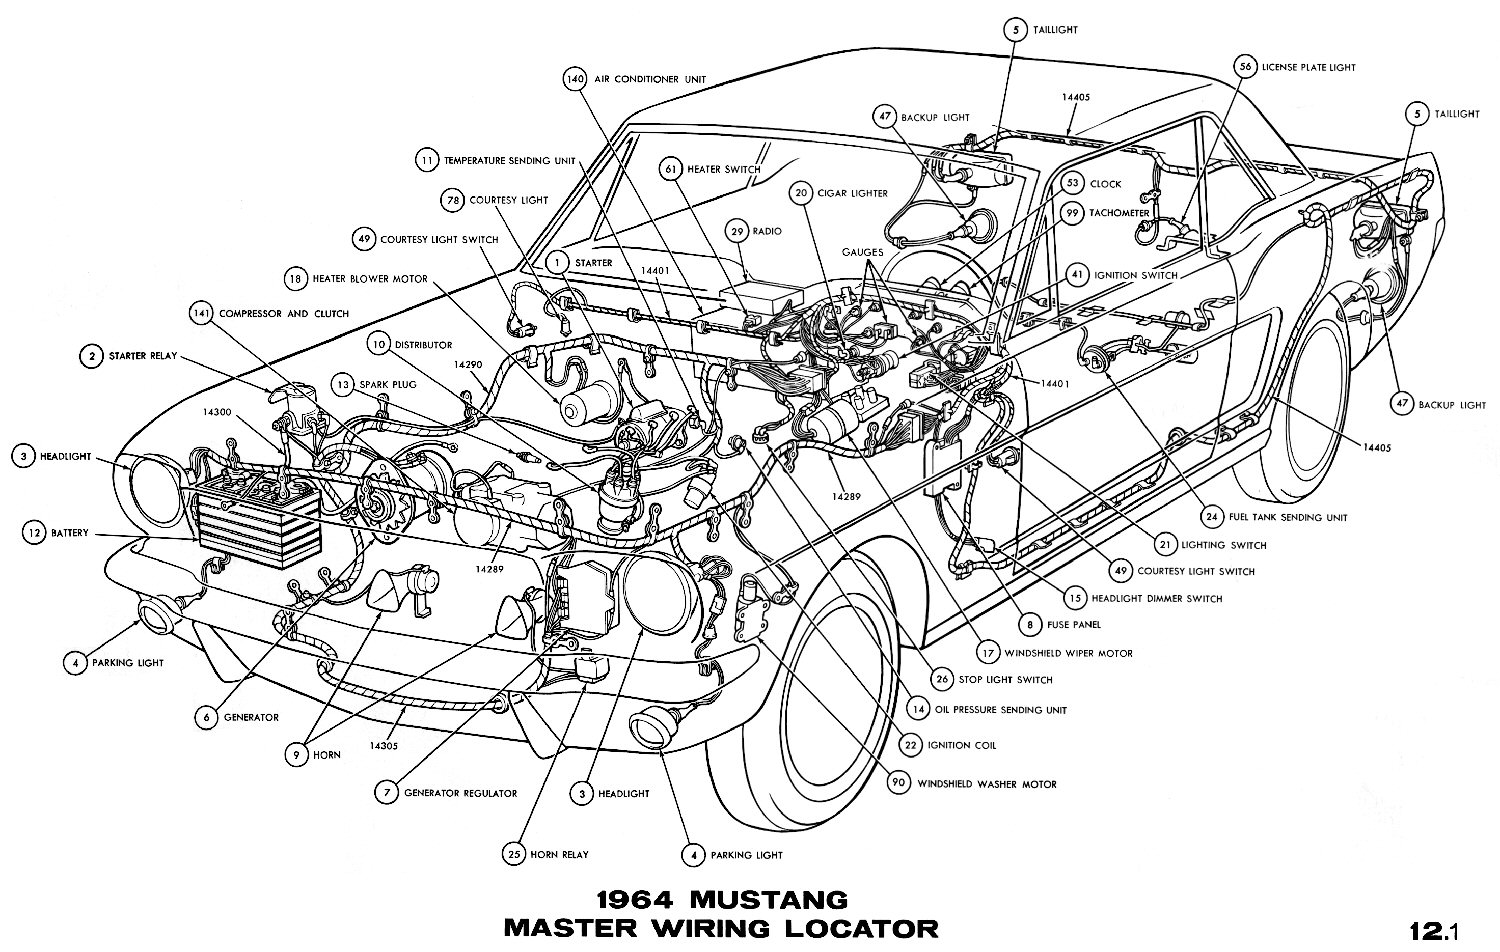 mustang wiring and vacuum diagrams archives average joe restoration 1964 mustang master wiring pictorial continue reading 1964 mustang wiring diagrams →